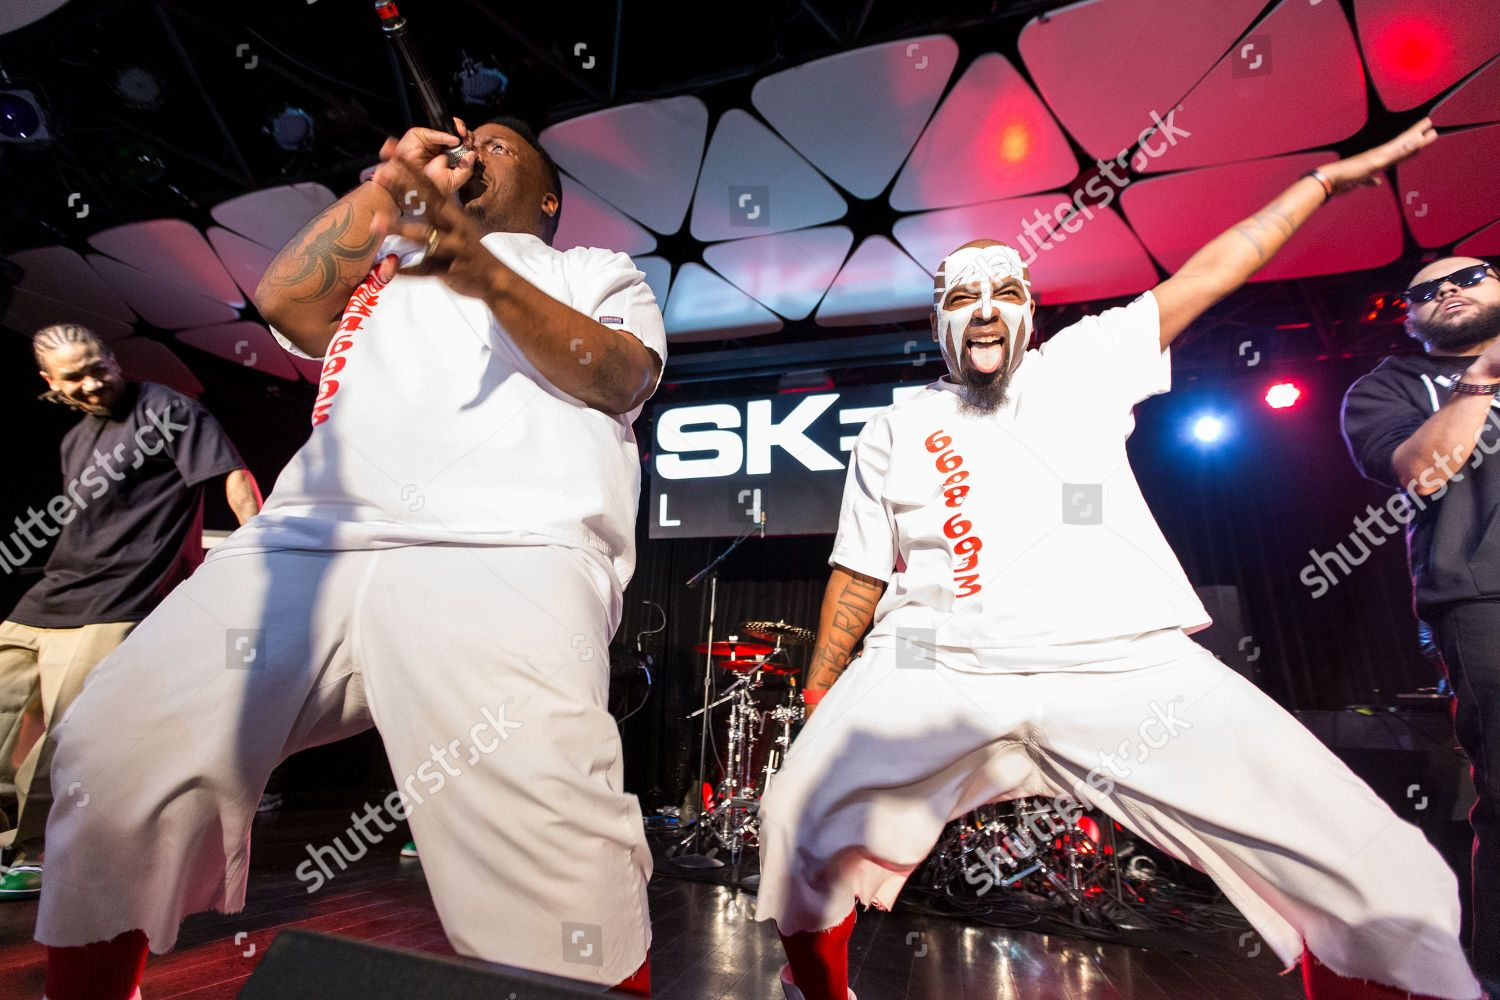 Krizz Kaliko L Tech N9ne perform on Editorial Stock Photo